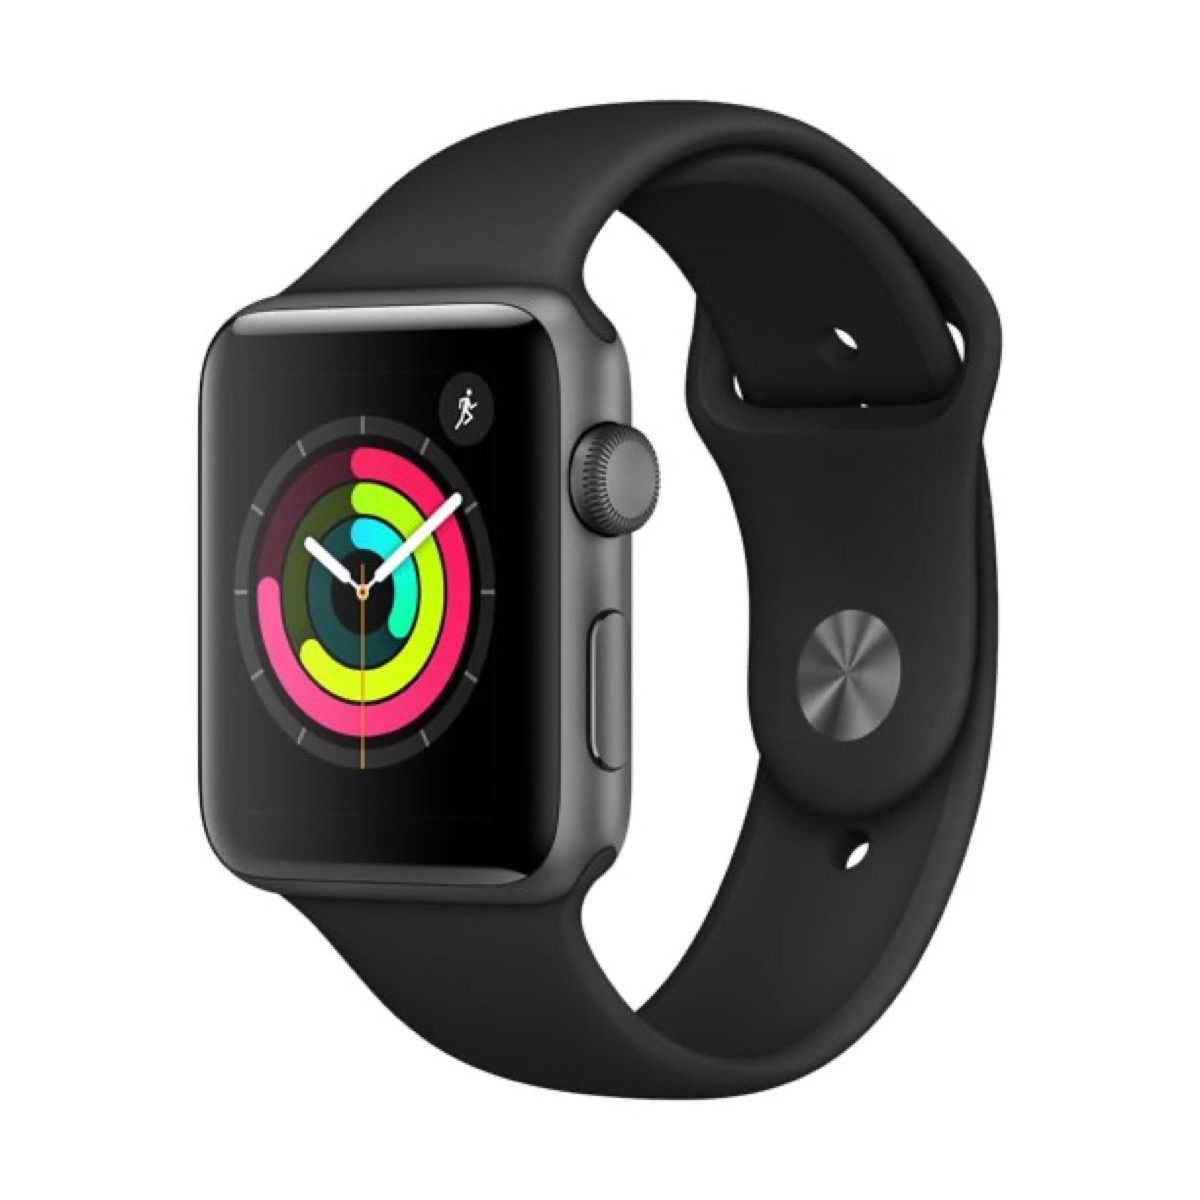 apple watch with black band